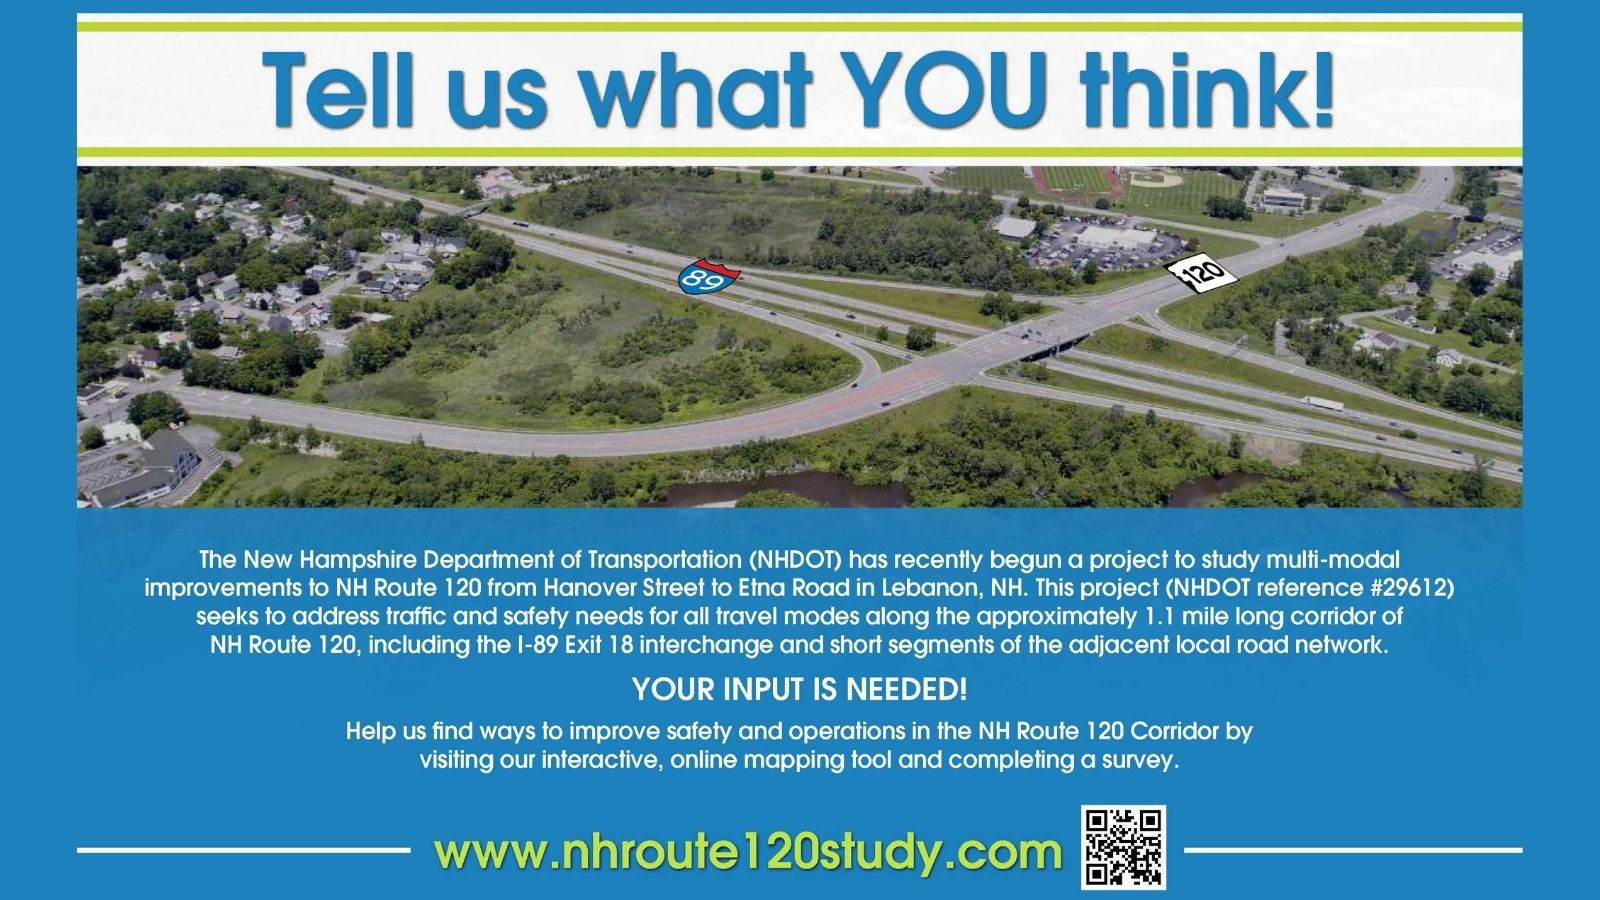 NH Route 120 Study: Tell us what you think